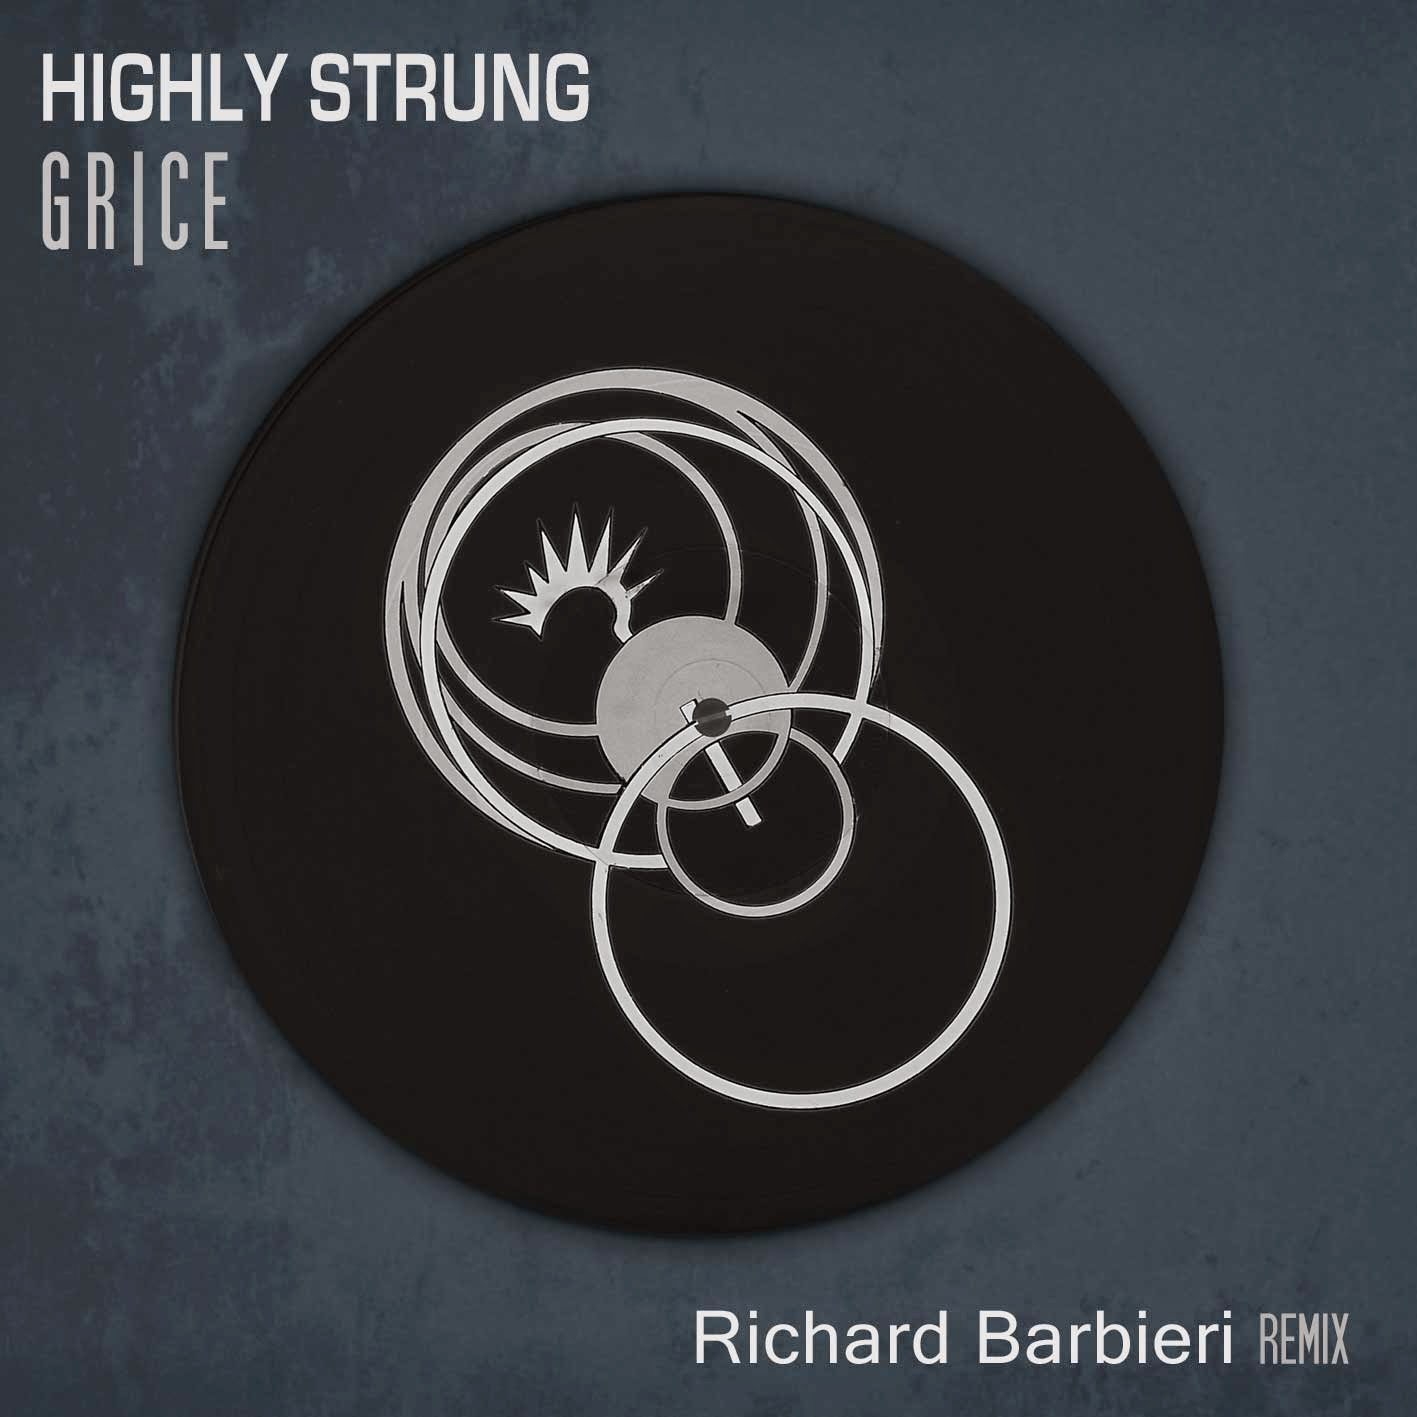 Highly Strung (Barbieri Remix)